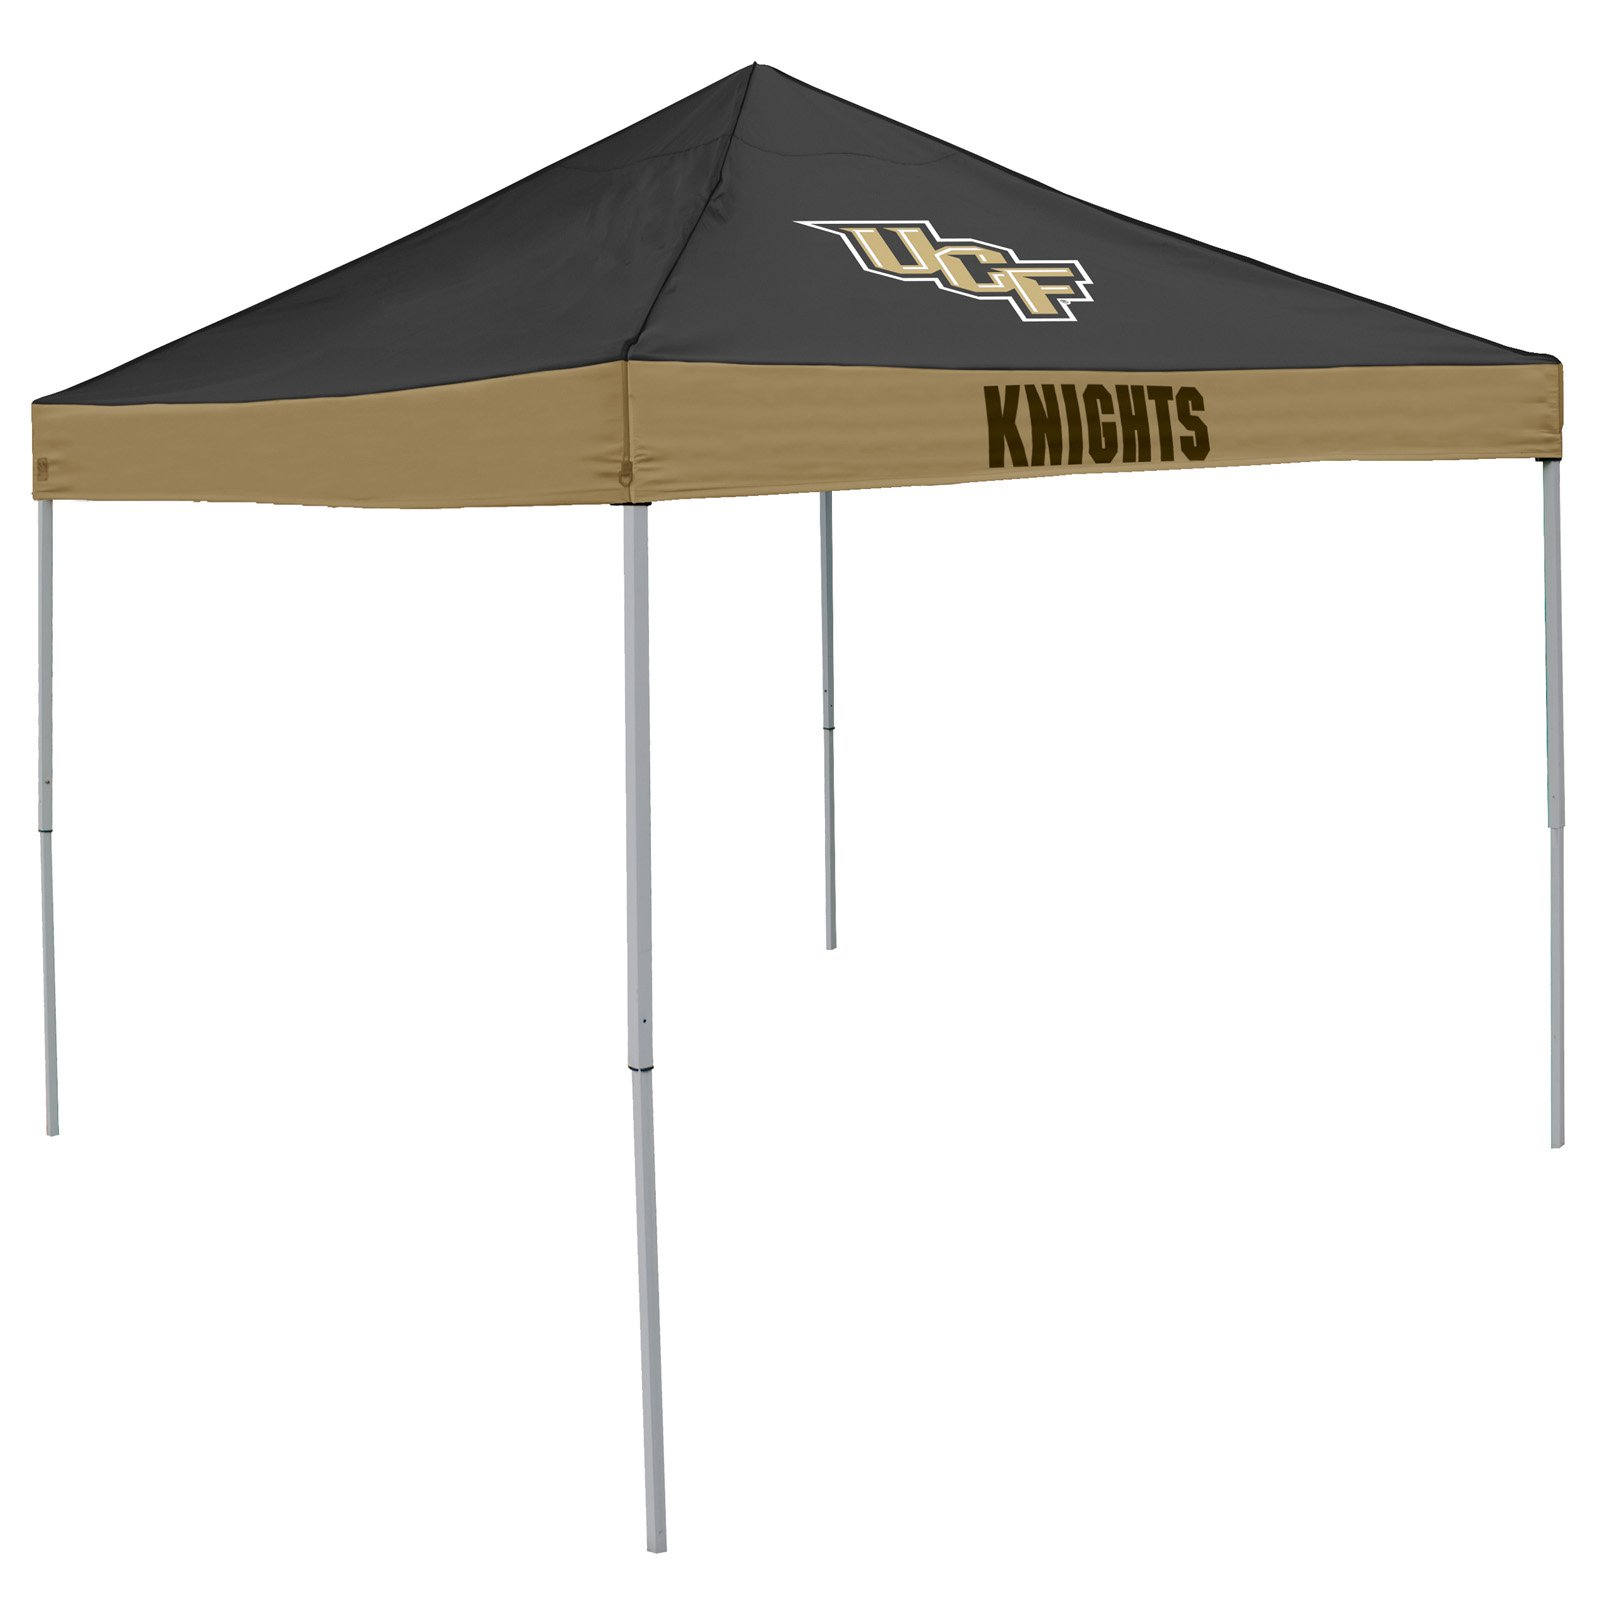 Team Logo Economy Pop-Up Canopy - Walmart.com  sc 1 st  Walmart.com & Logo Chair NCAA 9 x 9 ft. Team Logo Economy Pop-Up Canopy ...